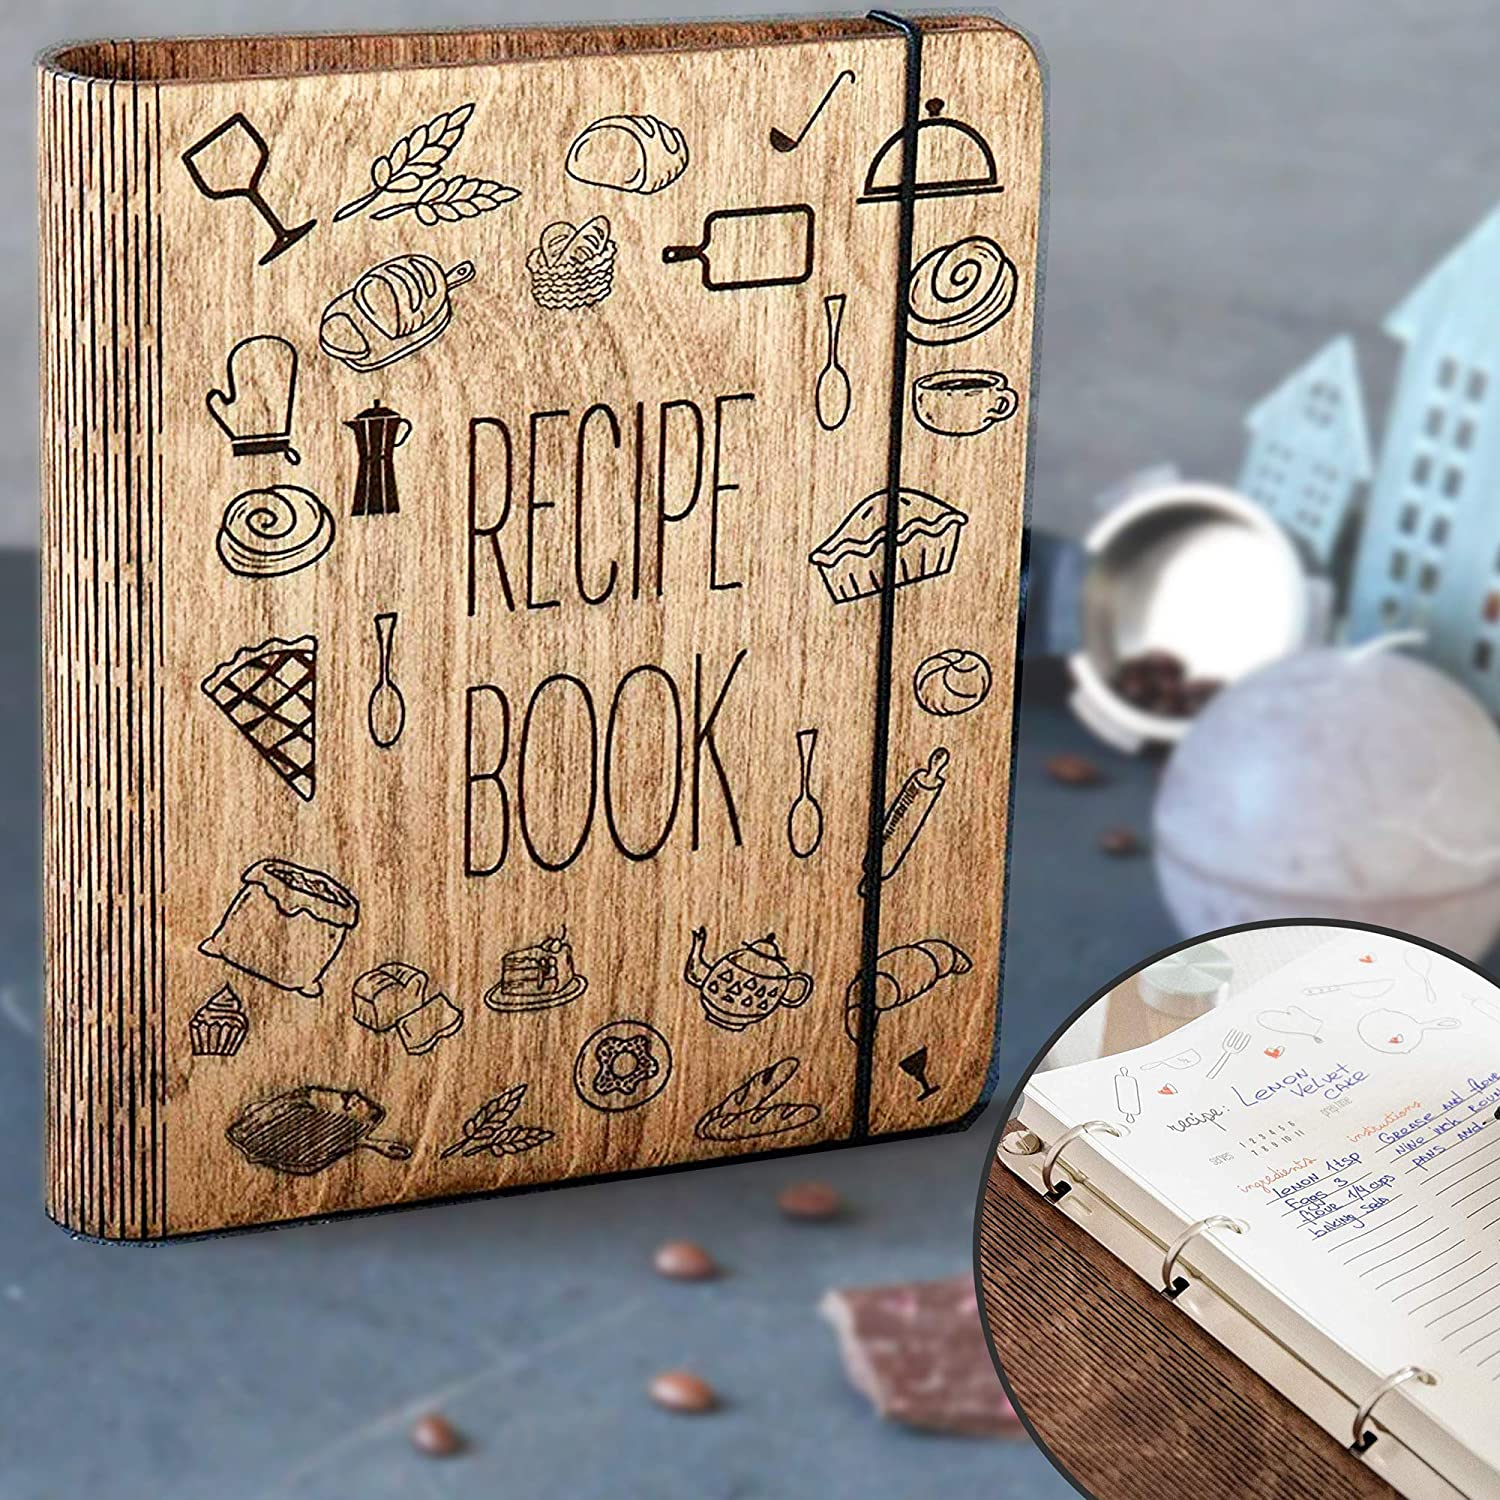 Best Enjoy The Wood recipe book 2021